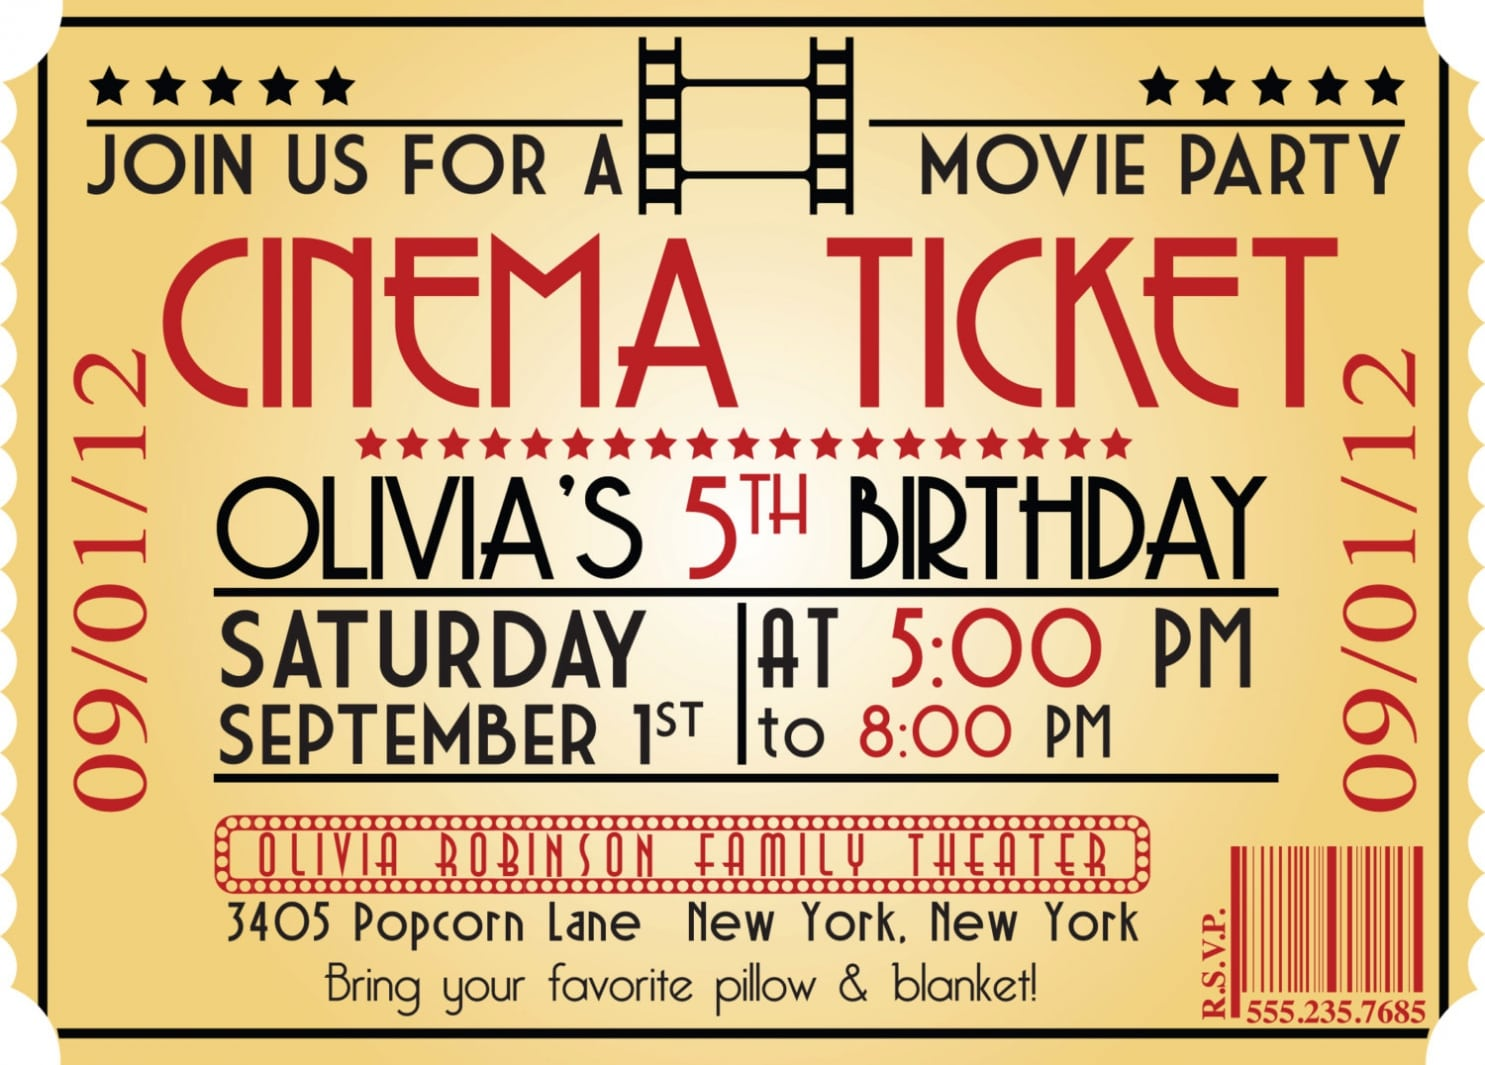 Movie Party Invitation Wording - Mickey Mouse Invitations Templates